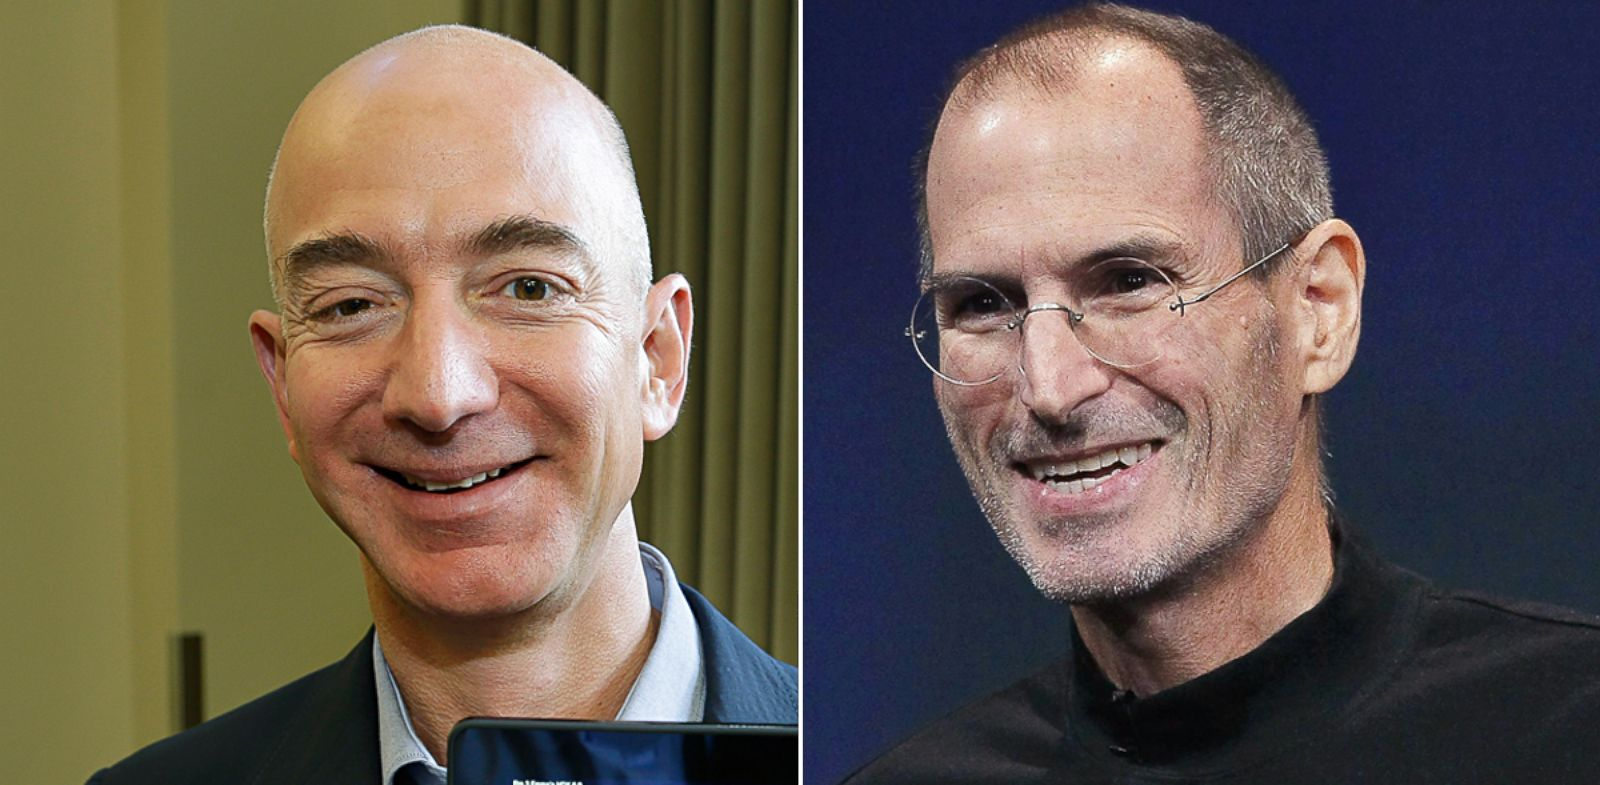 PHOTO: Jeff Bezos, CEO of Amazon.com, in Seattle, Sept. 24, 2013; Apple CEO Steve Jobs in Cupertino, Calif, Oct. 20, 2010.